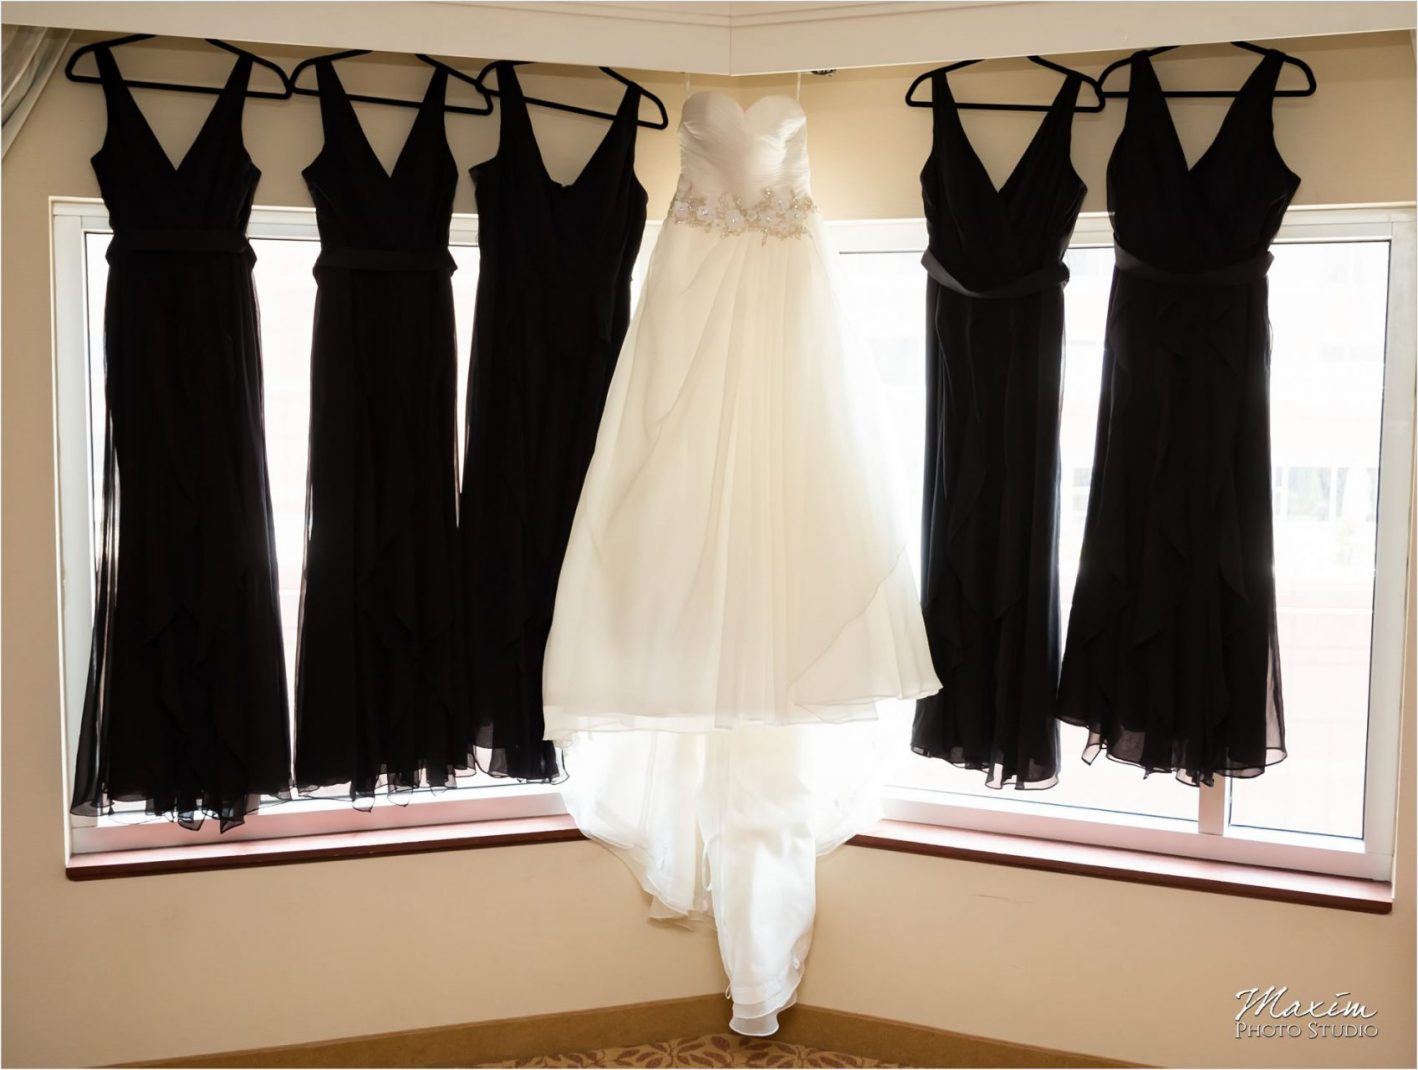 Marriott Rivercenter Covington Kentucky Wedding Bride Preparations dress